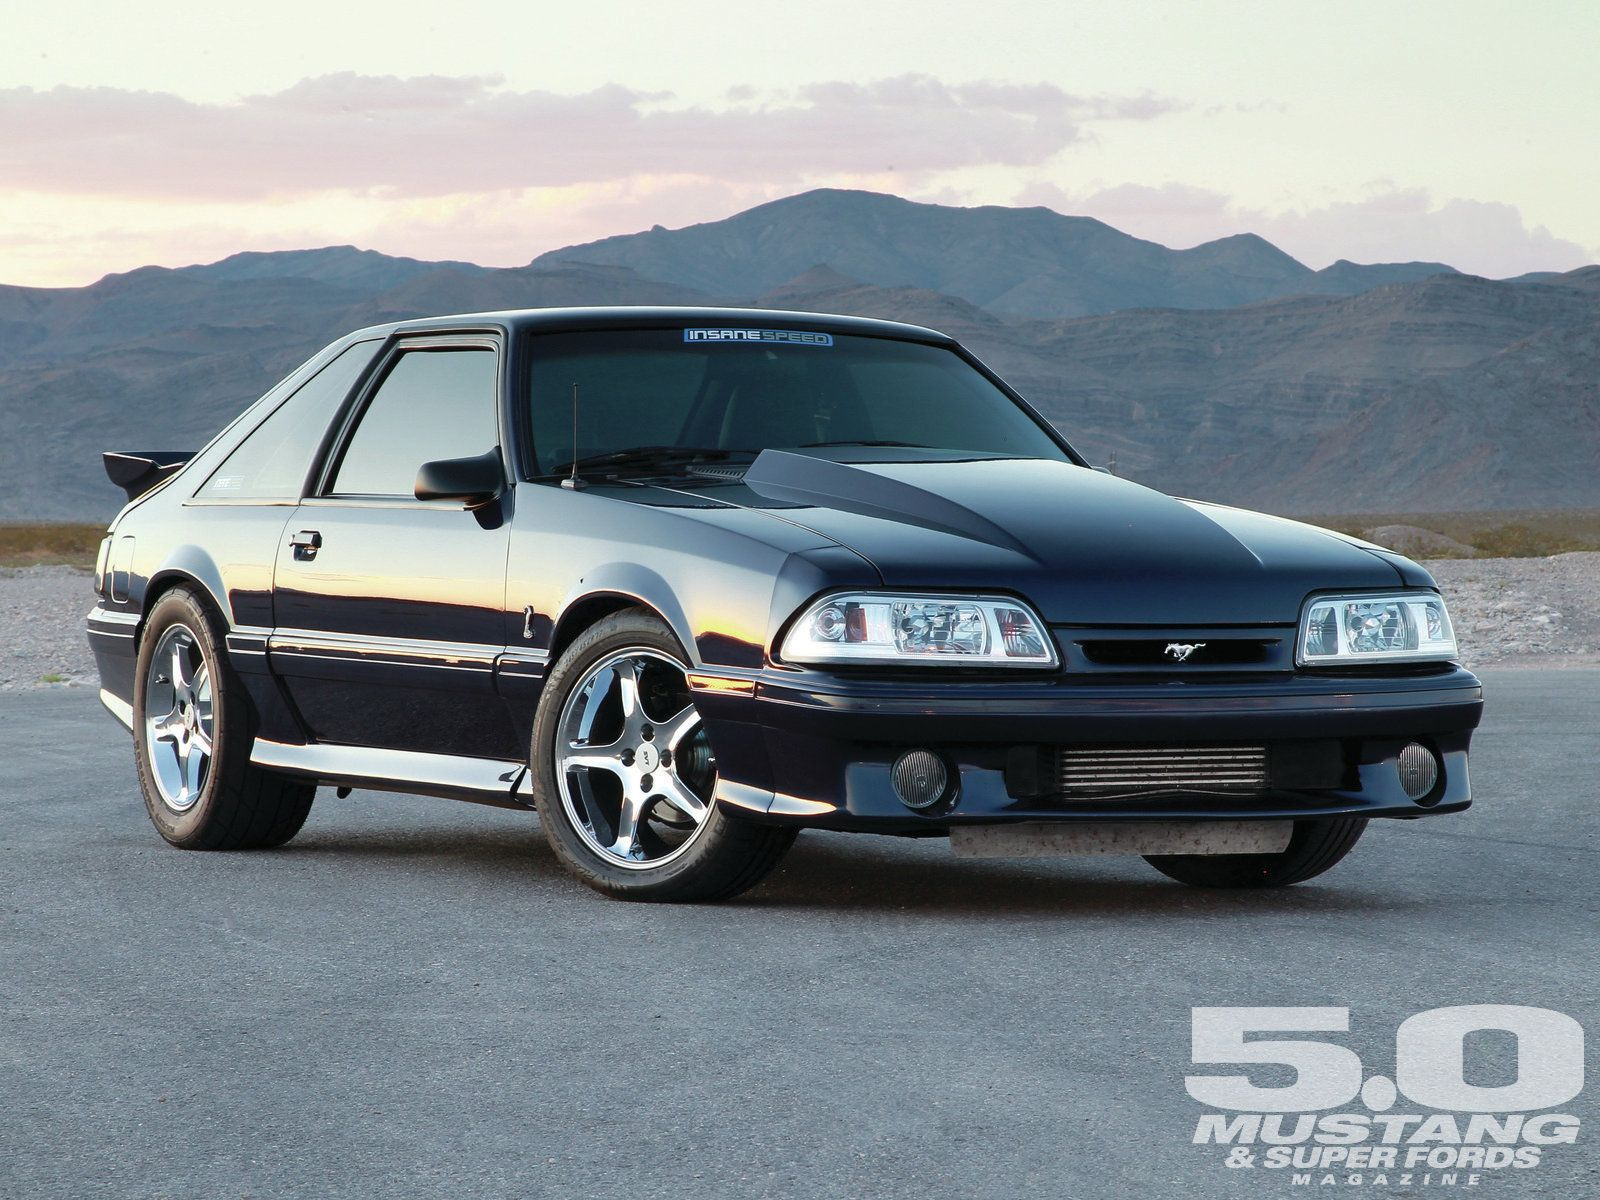 1992 ford fox mustang gt 5 0 ford mustang shelby. Black Bedroom Furniture Sets. Home Design Ideas